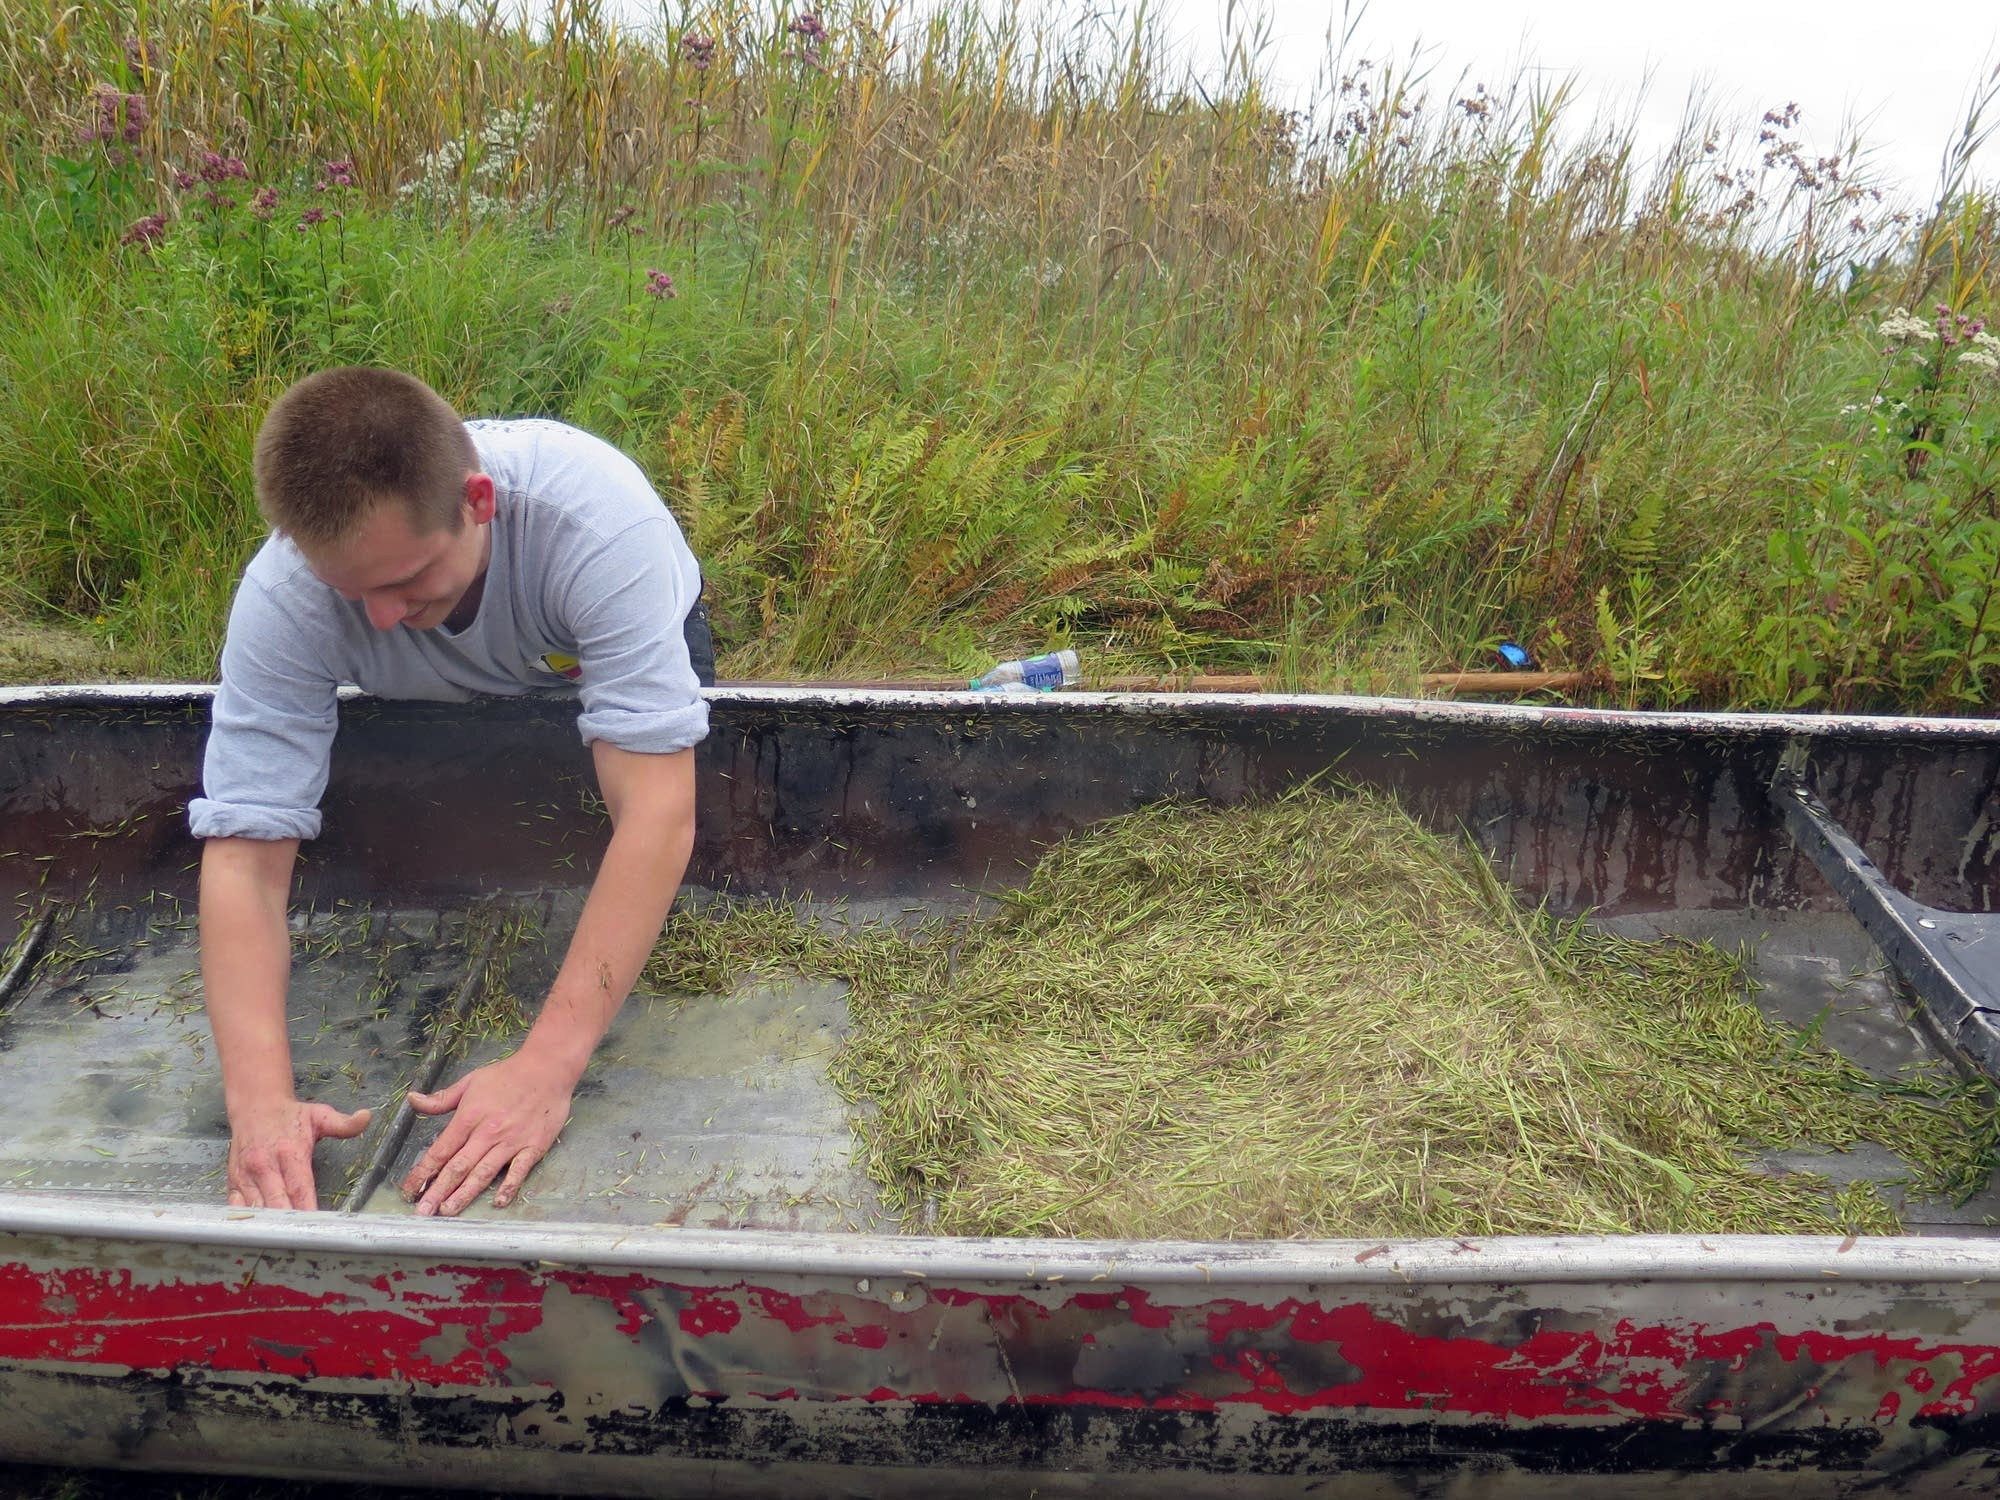 Bruce Martineau scoops up wild rice from the bottom of his canoe.